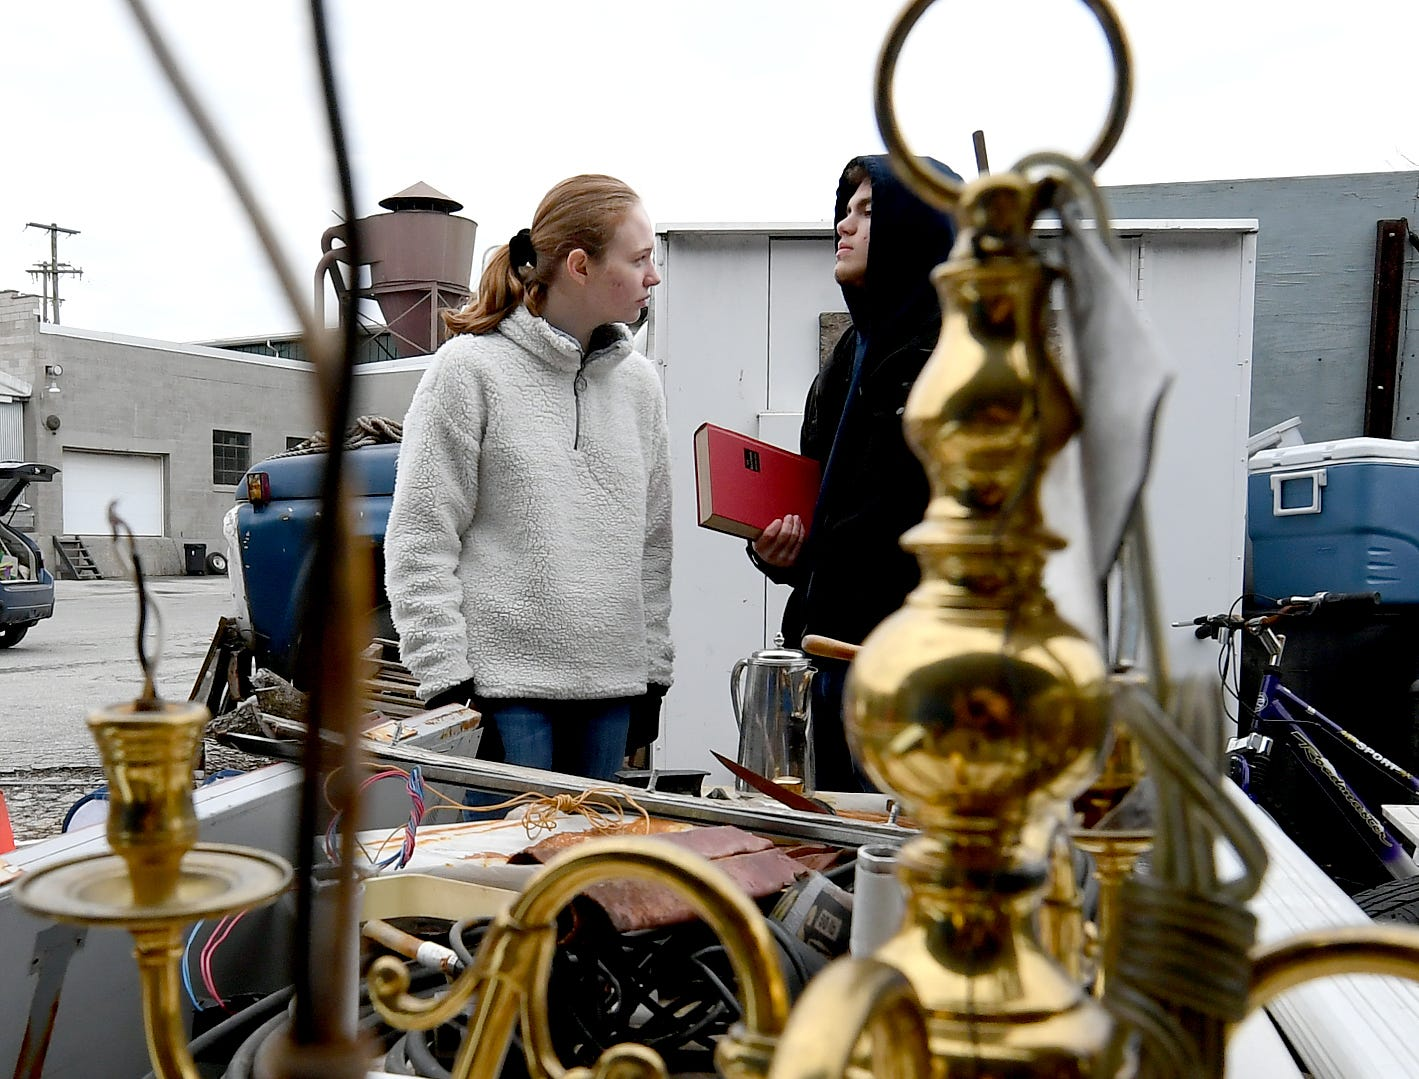 Central High School seniors Devon Russell, left, and Keith White search for items for her entry in the York County Solid Waste Authority Recycled Art Contest during Picker Day at the architectural salvage warehouse Refindings in York City Saturday, Feb. 23, 2019. The waste authority is sponsoring the fifth annual contest for York County high school students to promote recycling and celebrate Earth Day. Students create sculptures by mid-April from the materials donated by Refindings and the contest exhibit will be on display in the Marketview Arts Gallery, 37 W. Philadelphia St., beginning Sunday, April 14. Contest winners will be announced there during an awards event April 18. Bill Kalina photo